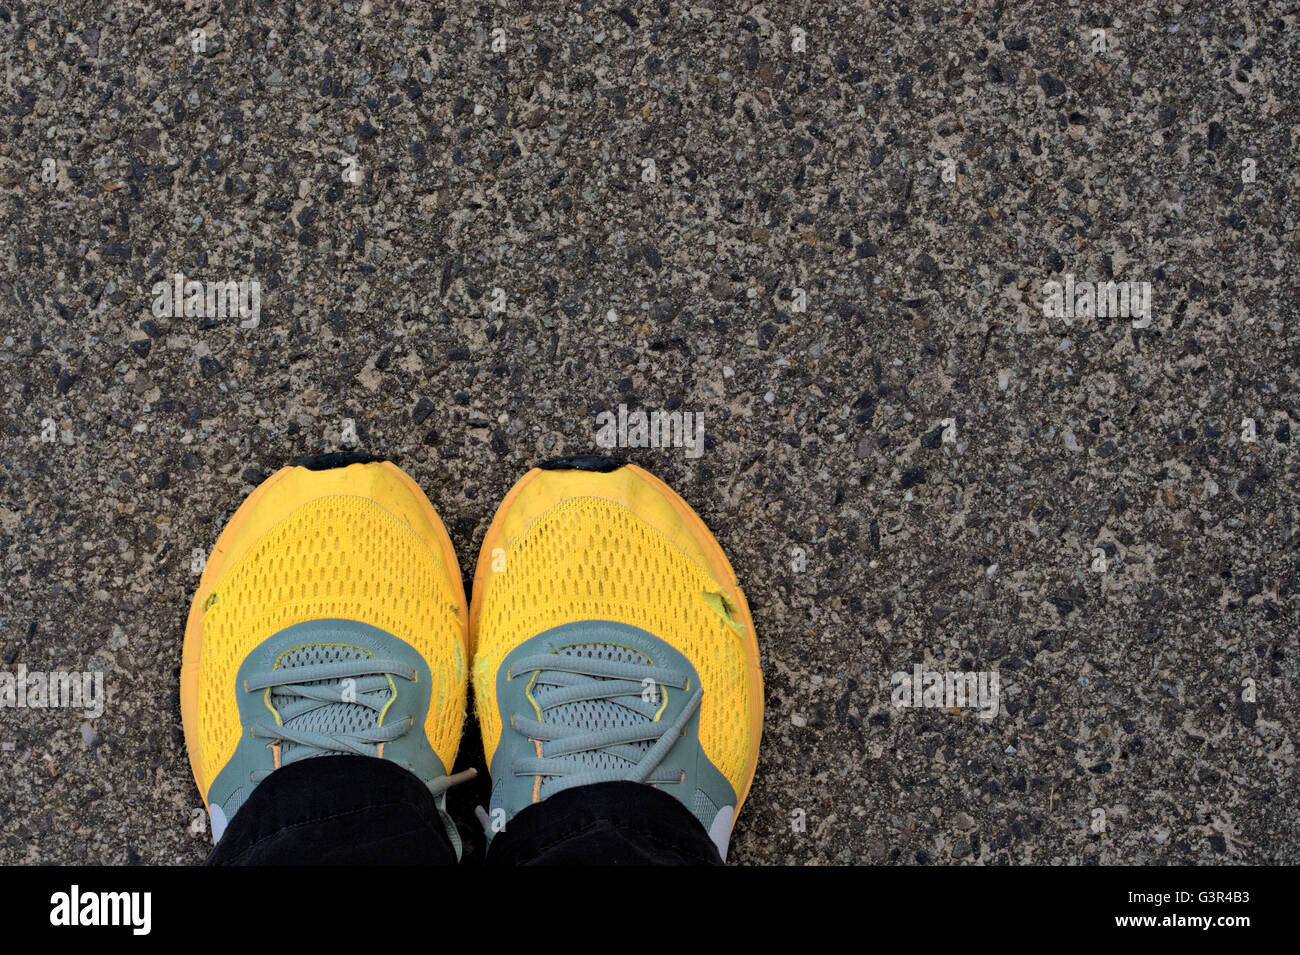 Worn out bright orange Nike running shoes against concrete background. - Stock Image